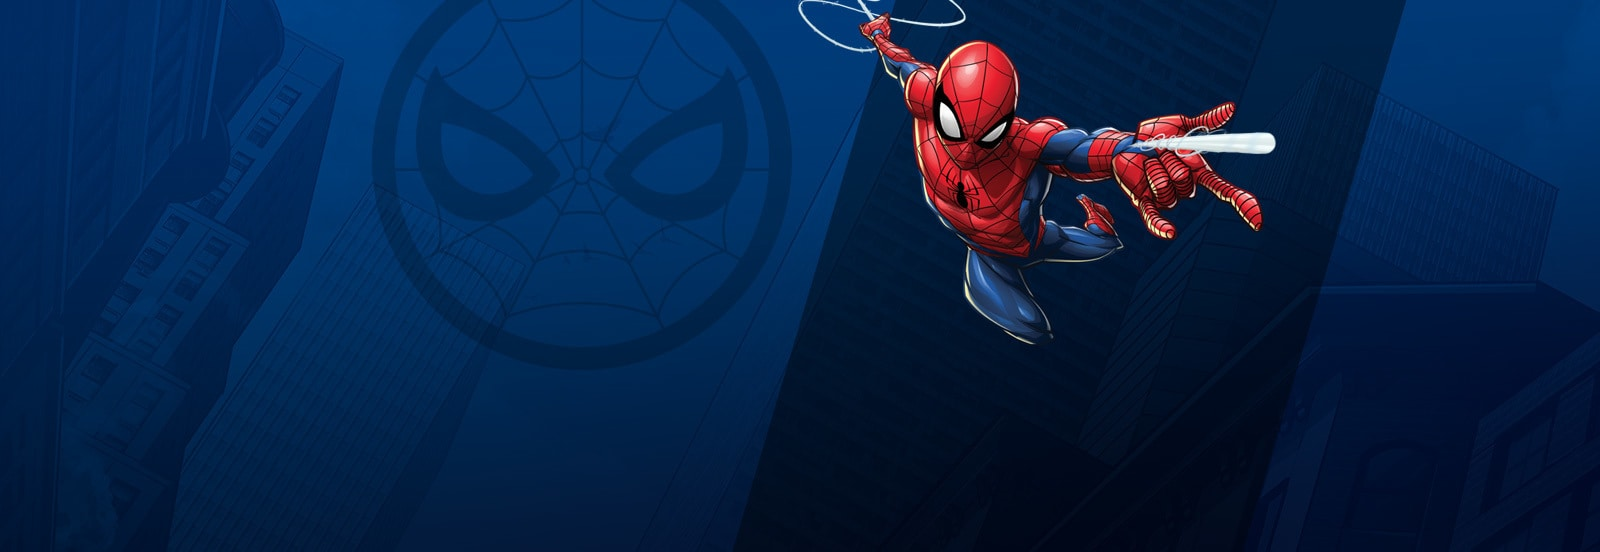 spider man spider man characters marvel hq